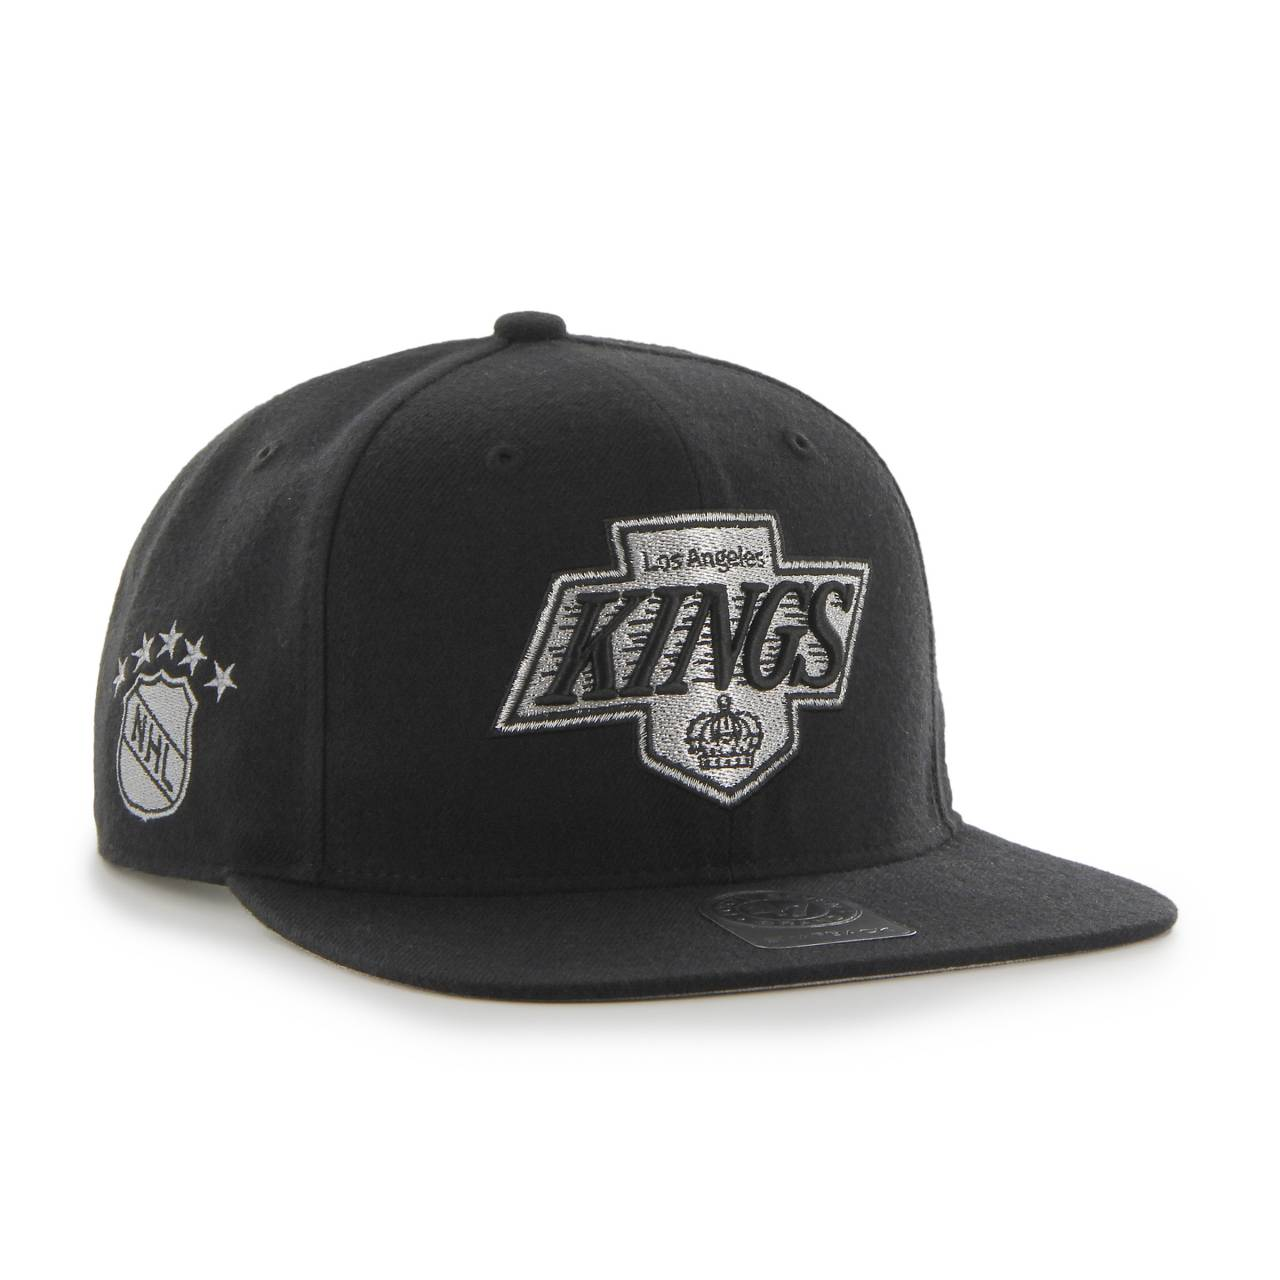 47-nhl-los-angeles-kings-black-snapback